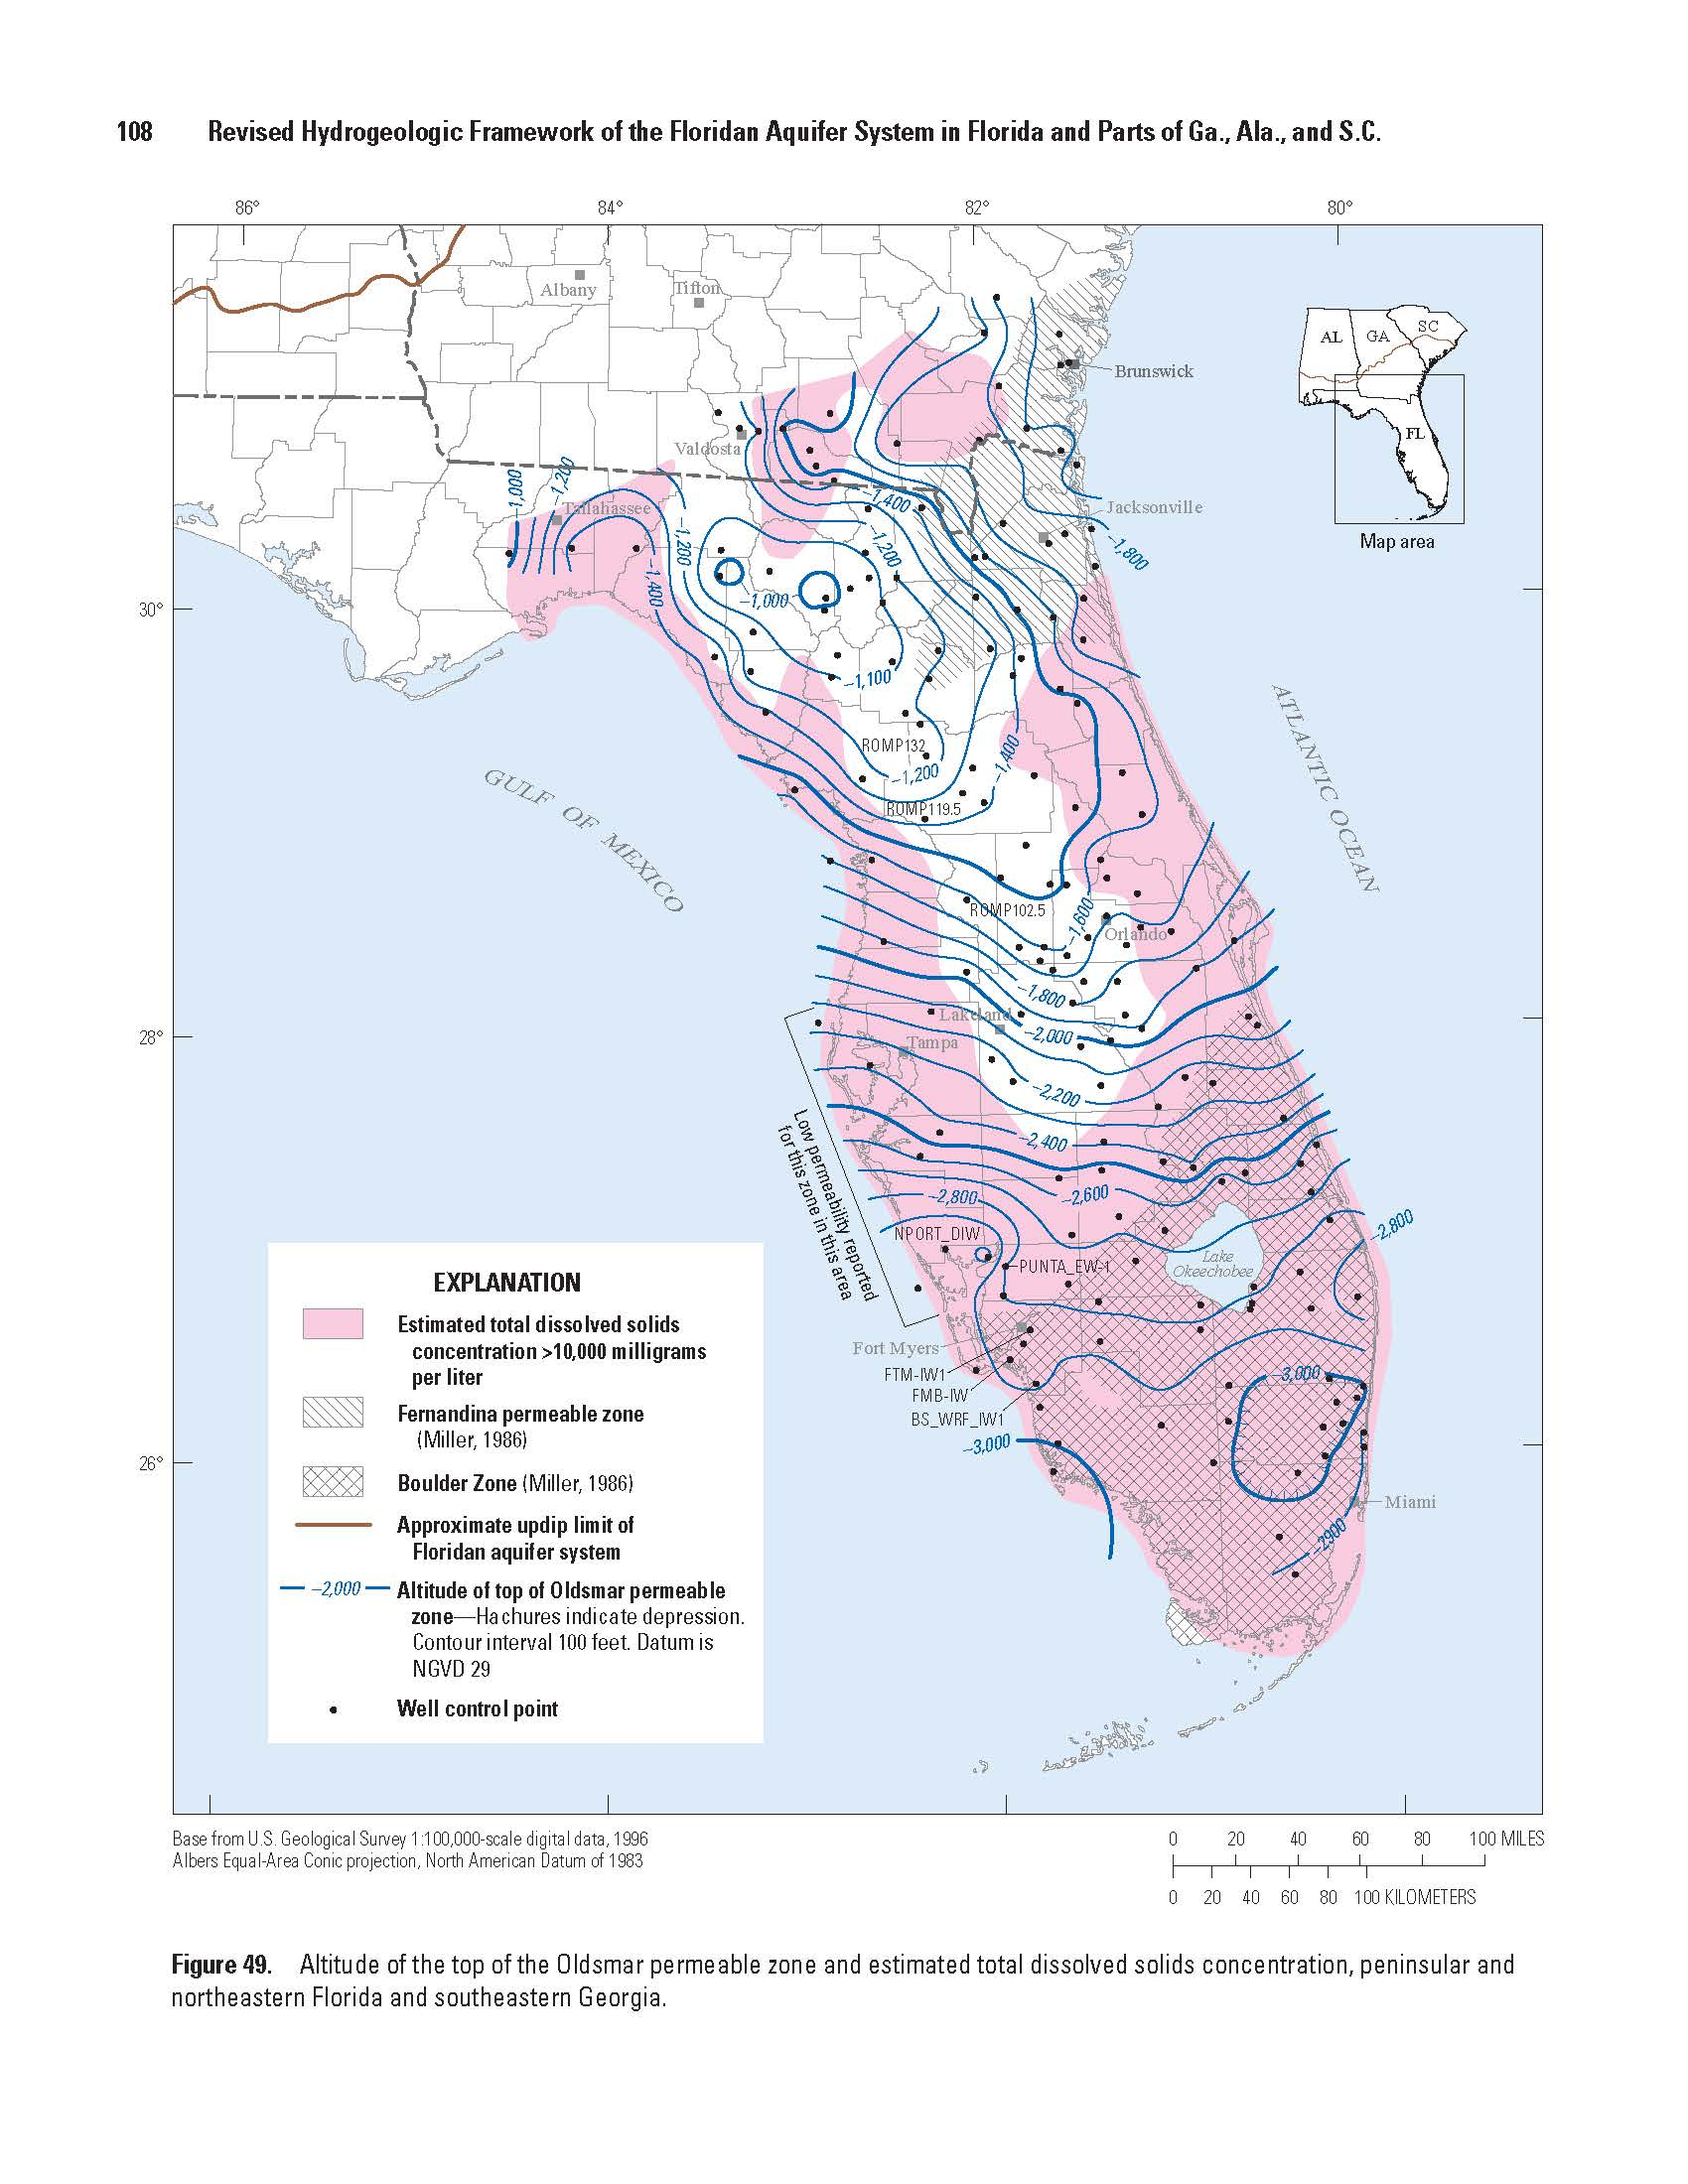 Oldsmar permeable zone